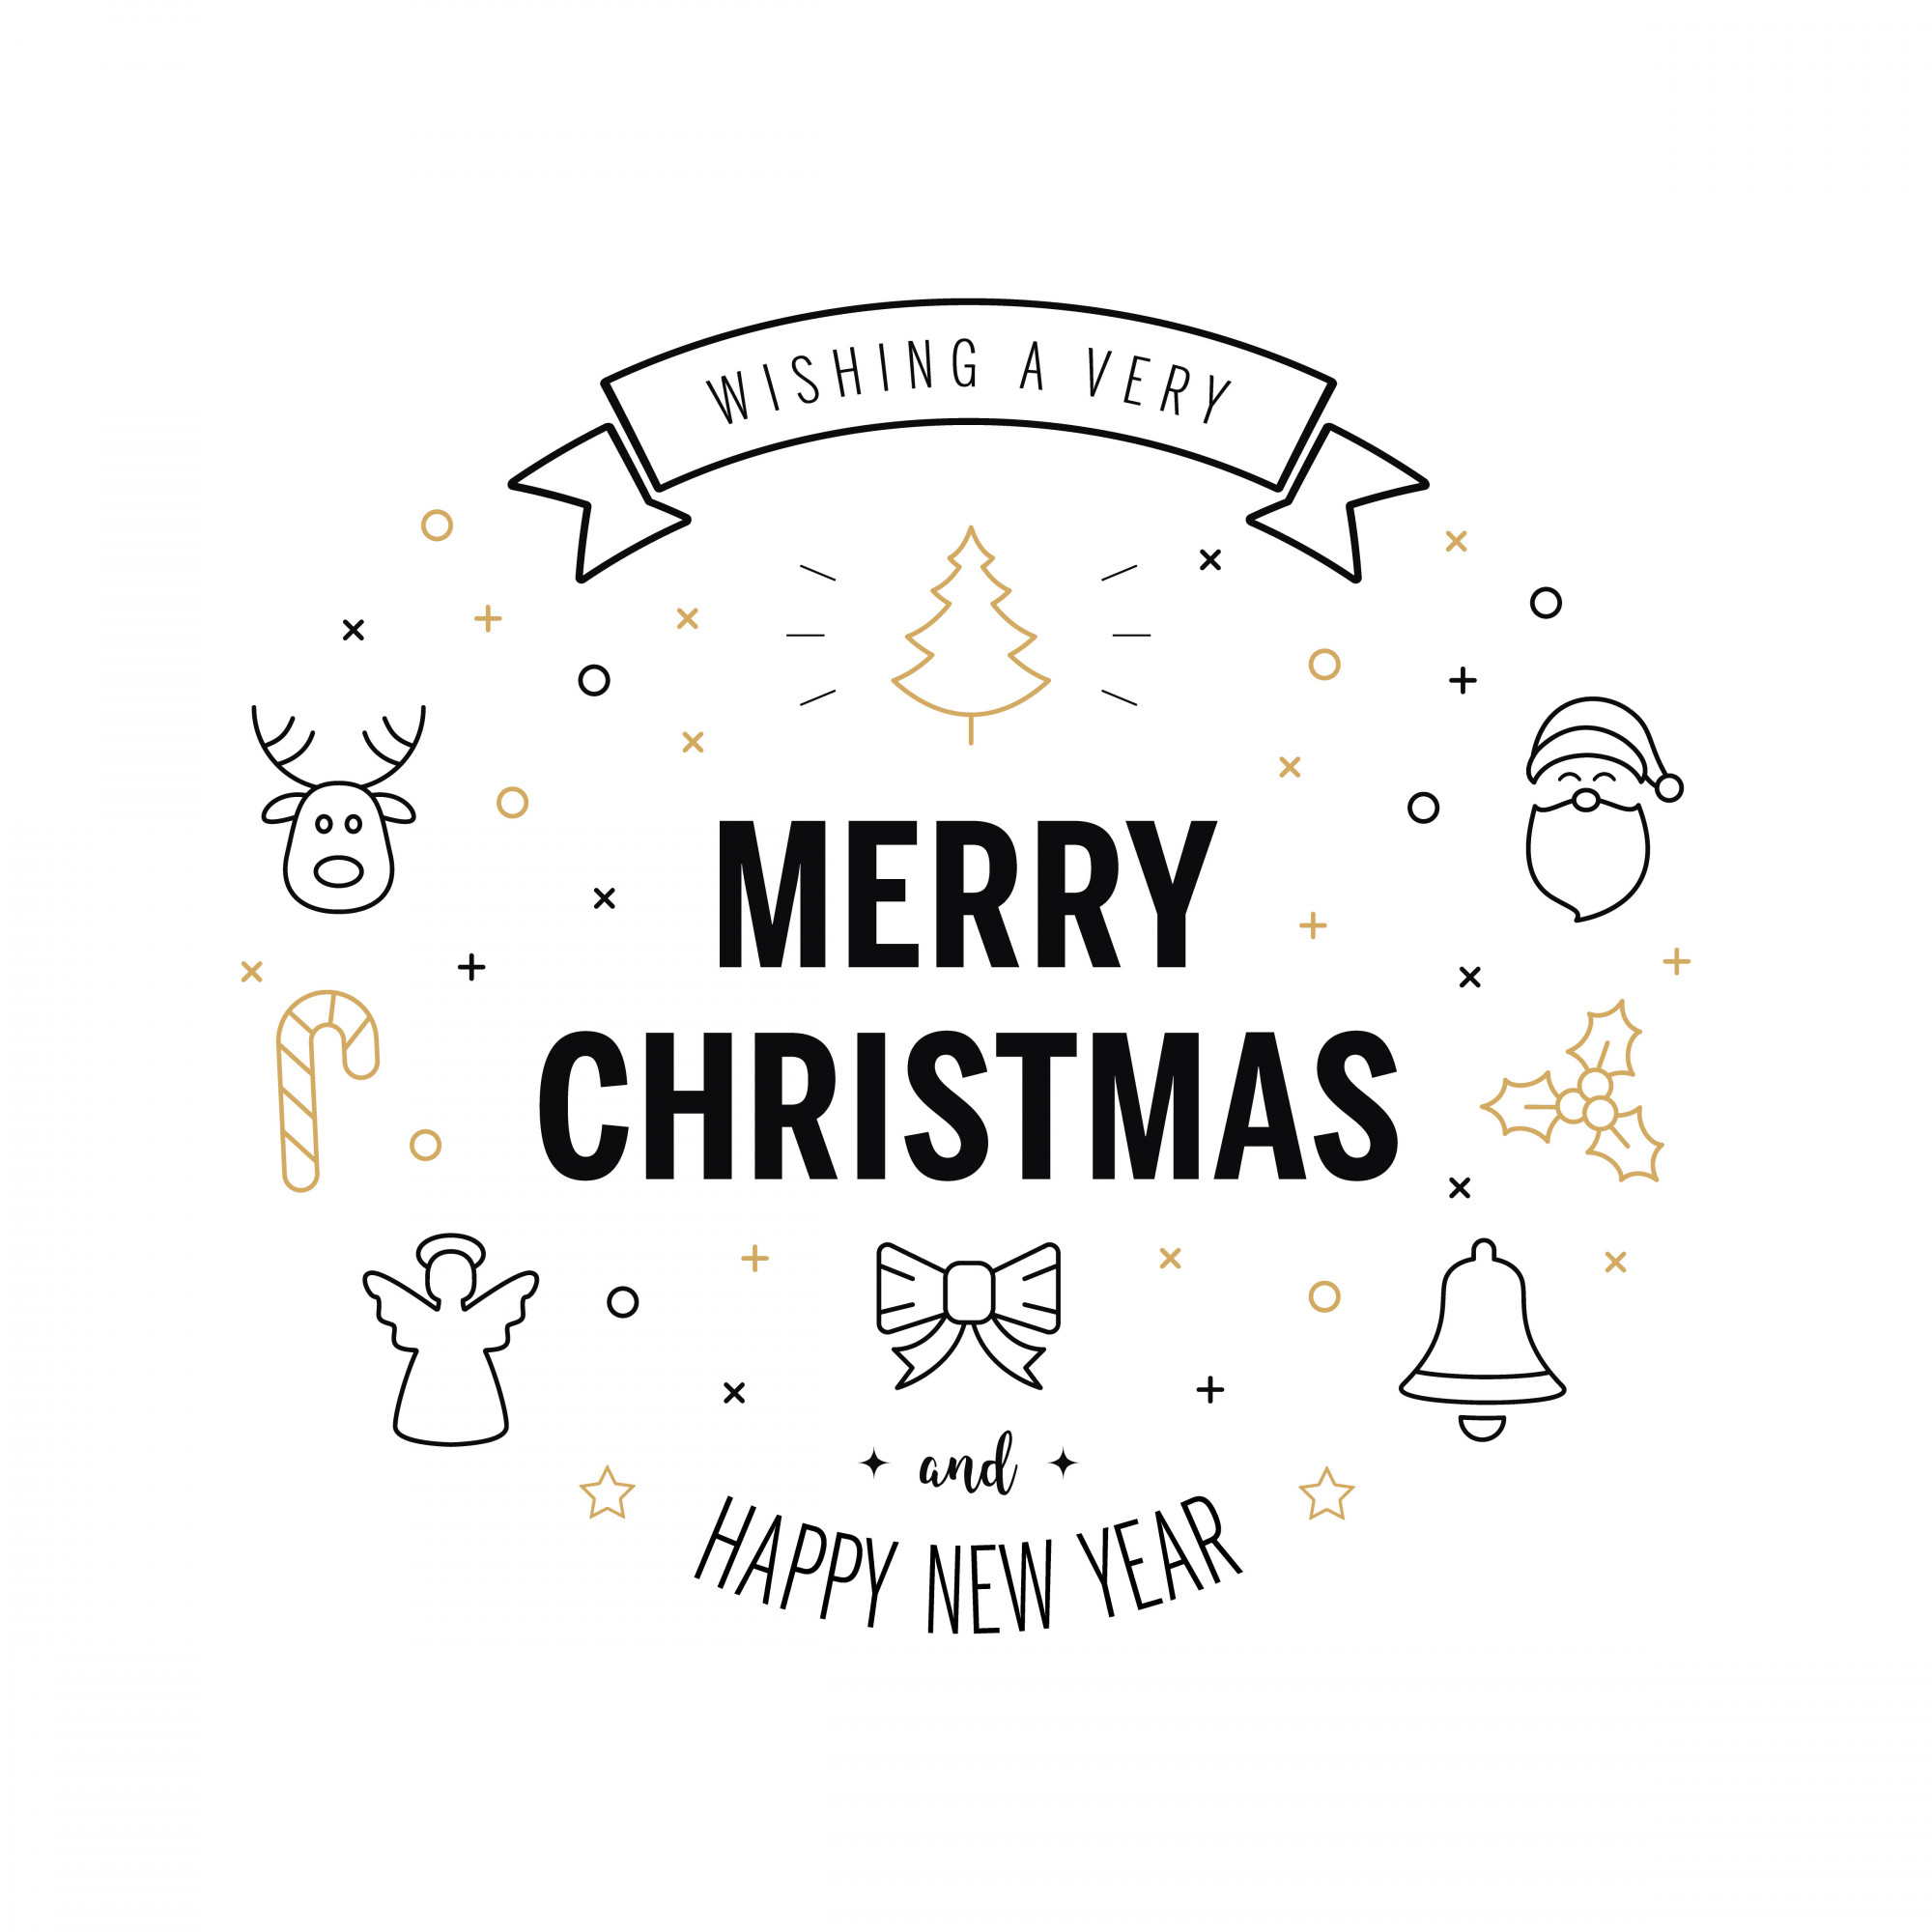 Merry christmas greeting text